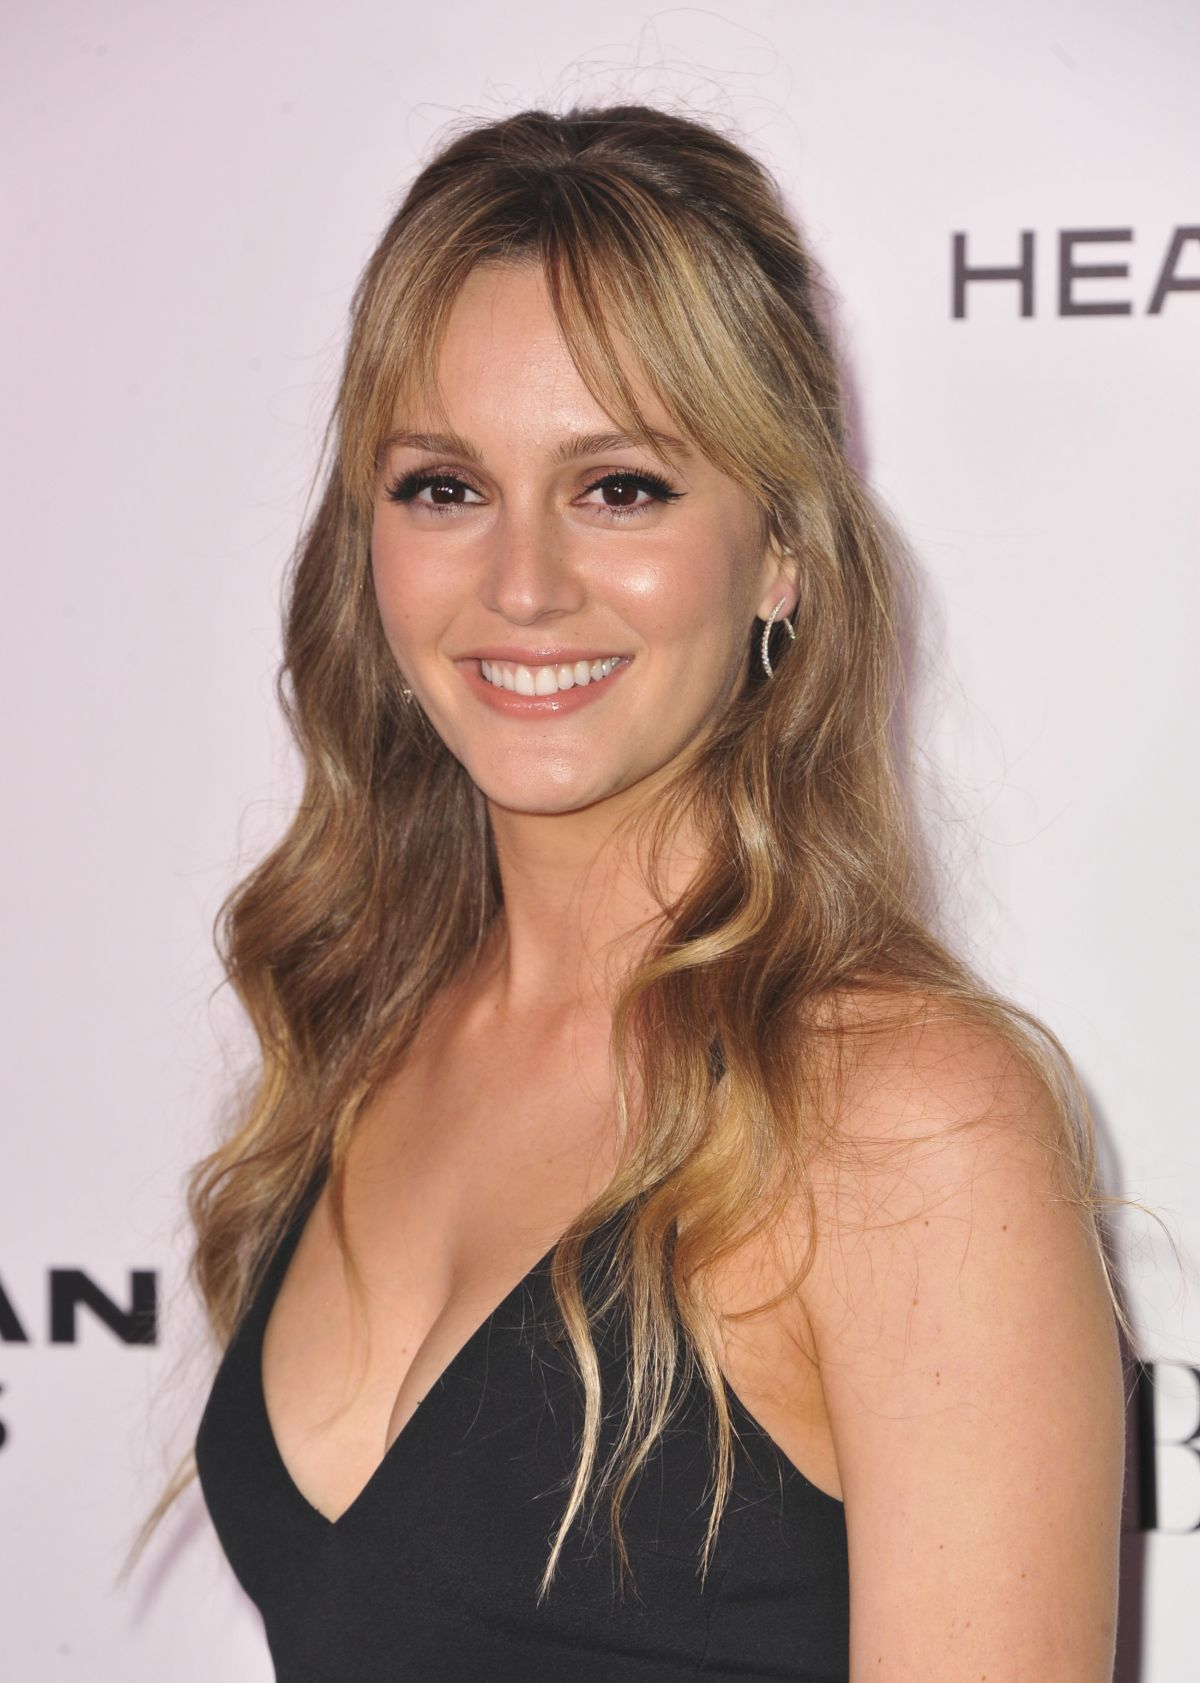 leighton women That same year, she was a spokesperson for sunsilk's life can't wait campaign to motivate women to pursue their dreams (stephen jerzak featuring leighton meester.